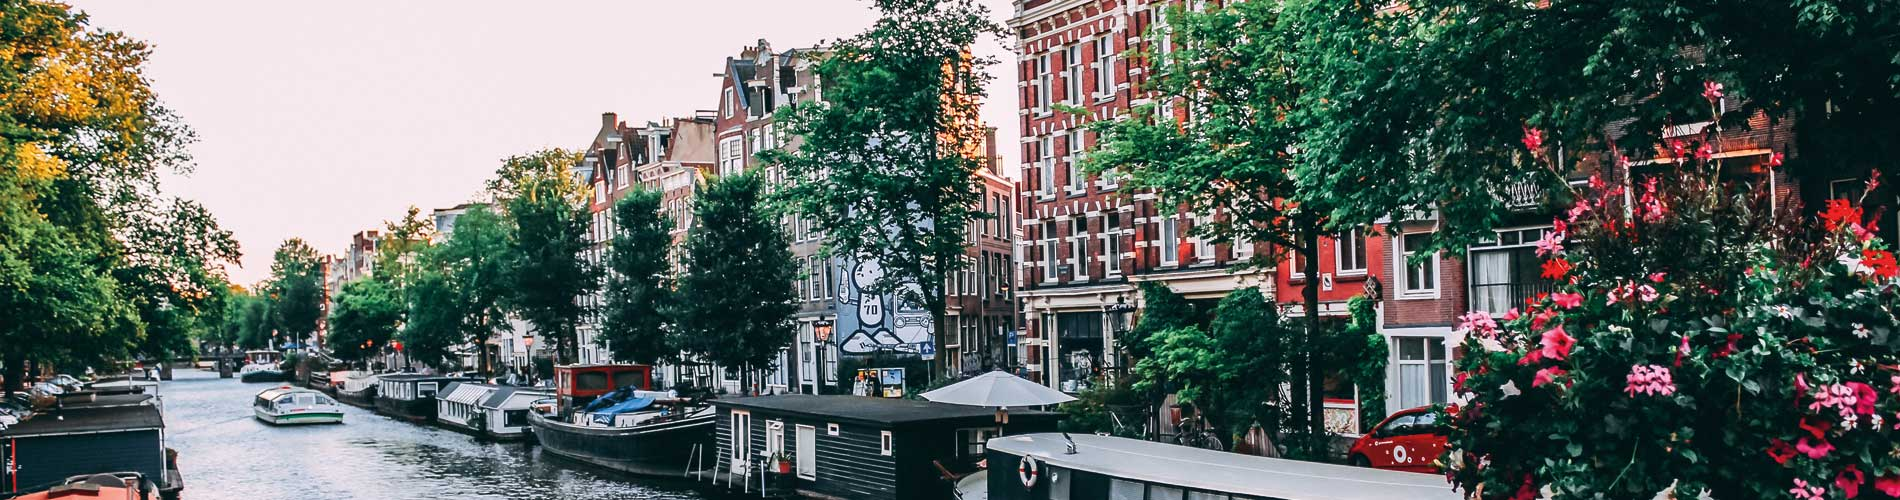 Blog_WhereToTravel2020_Q120_Amsterdam_1900x500